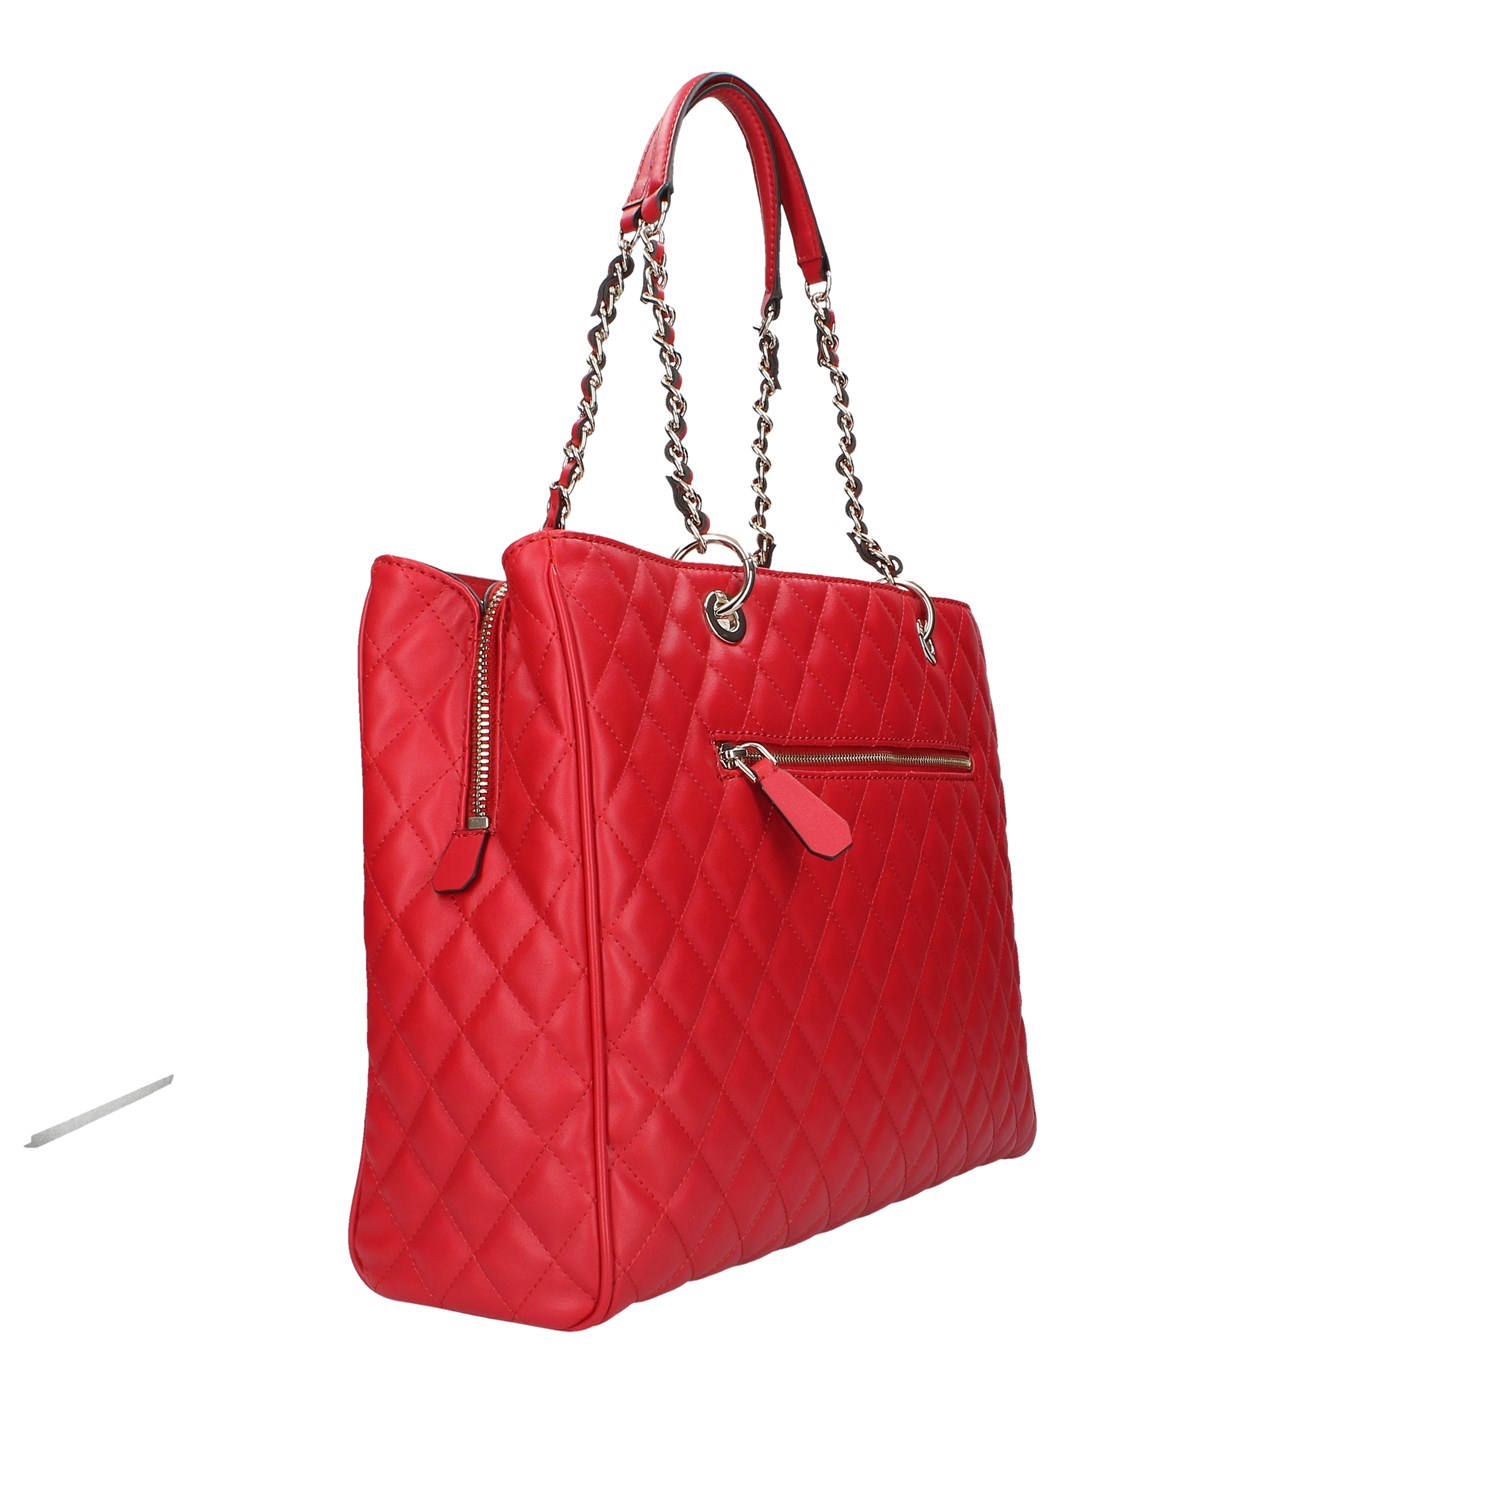 Spalla Guess Borsa Candy Donna Rosso A Sweet qwPwS6 48c4061169d